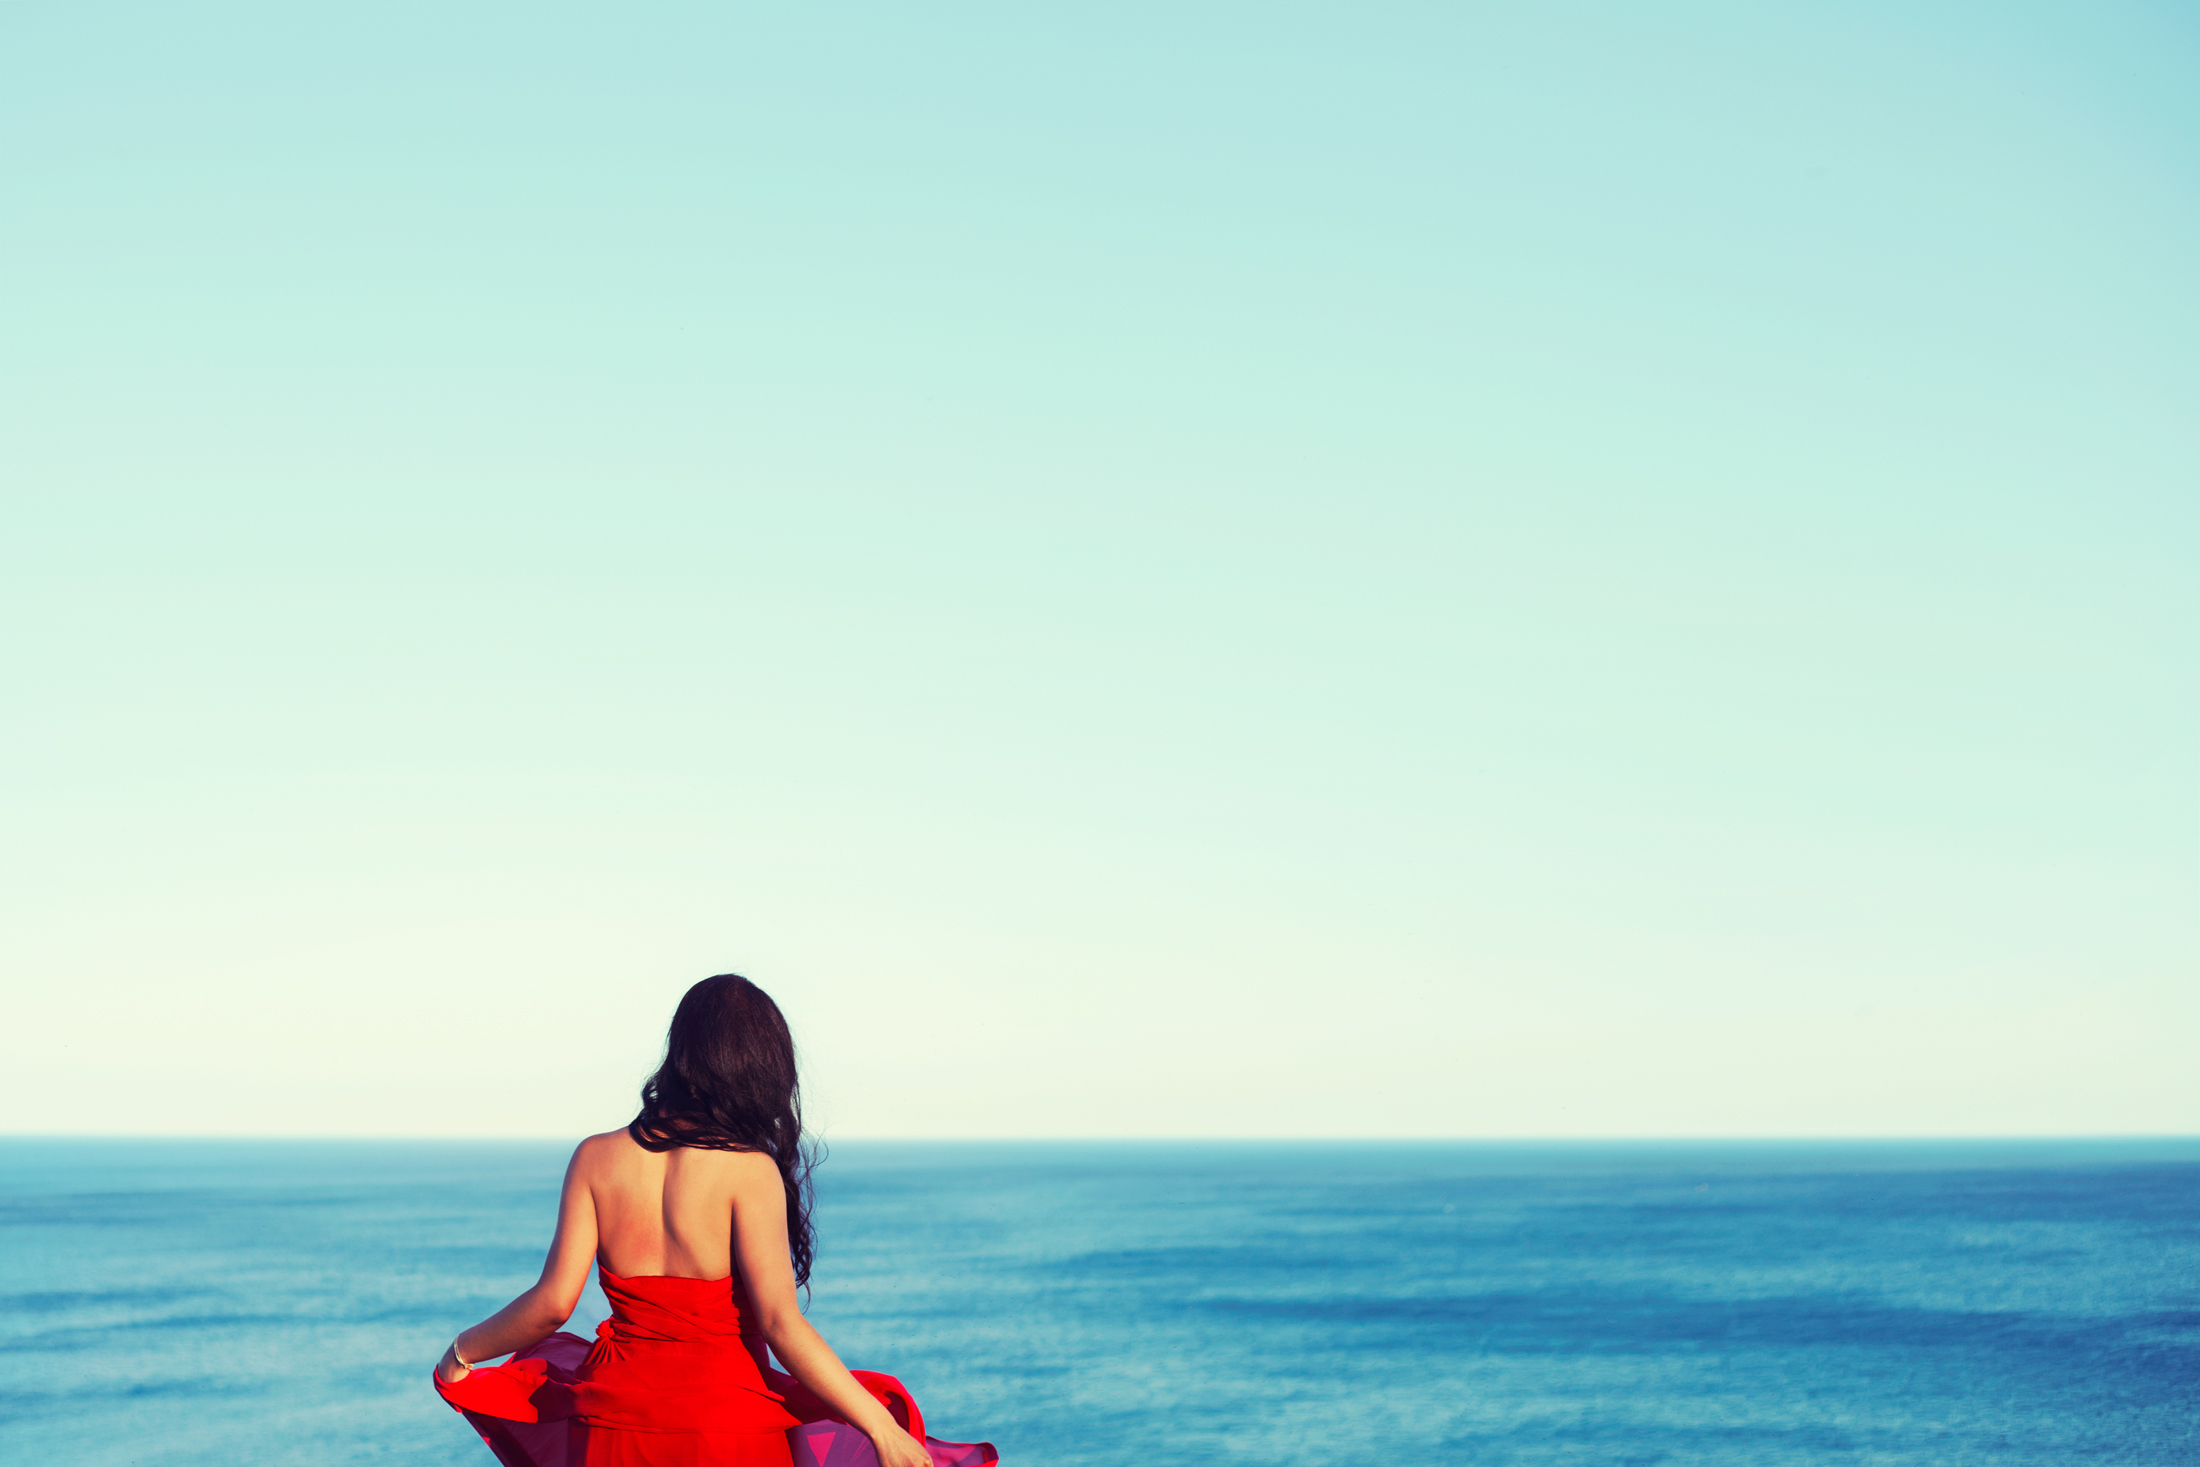 girl in red dress looking out at the blue water, lake ontario